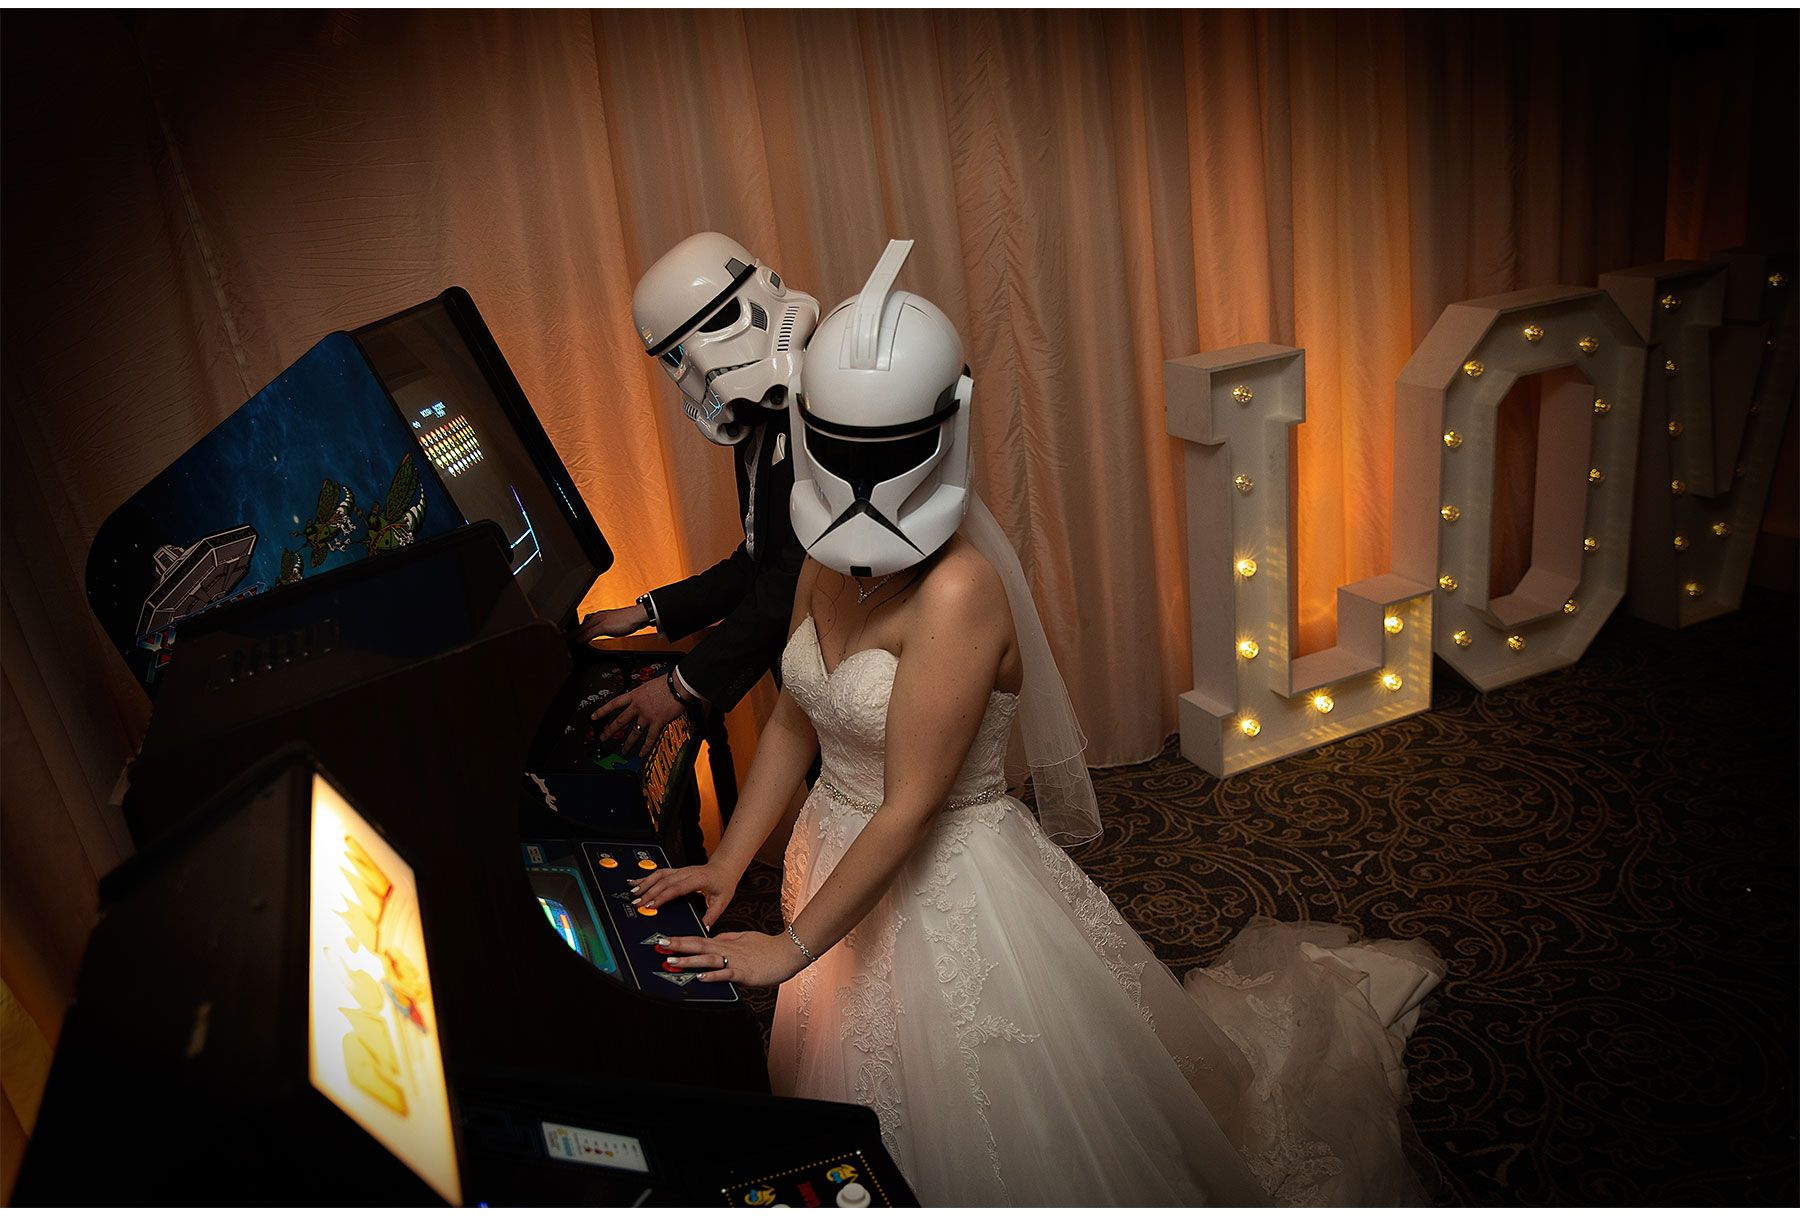 Bride and Groom having fun with arcade games